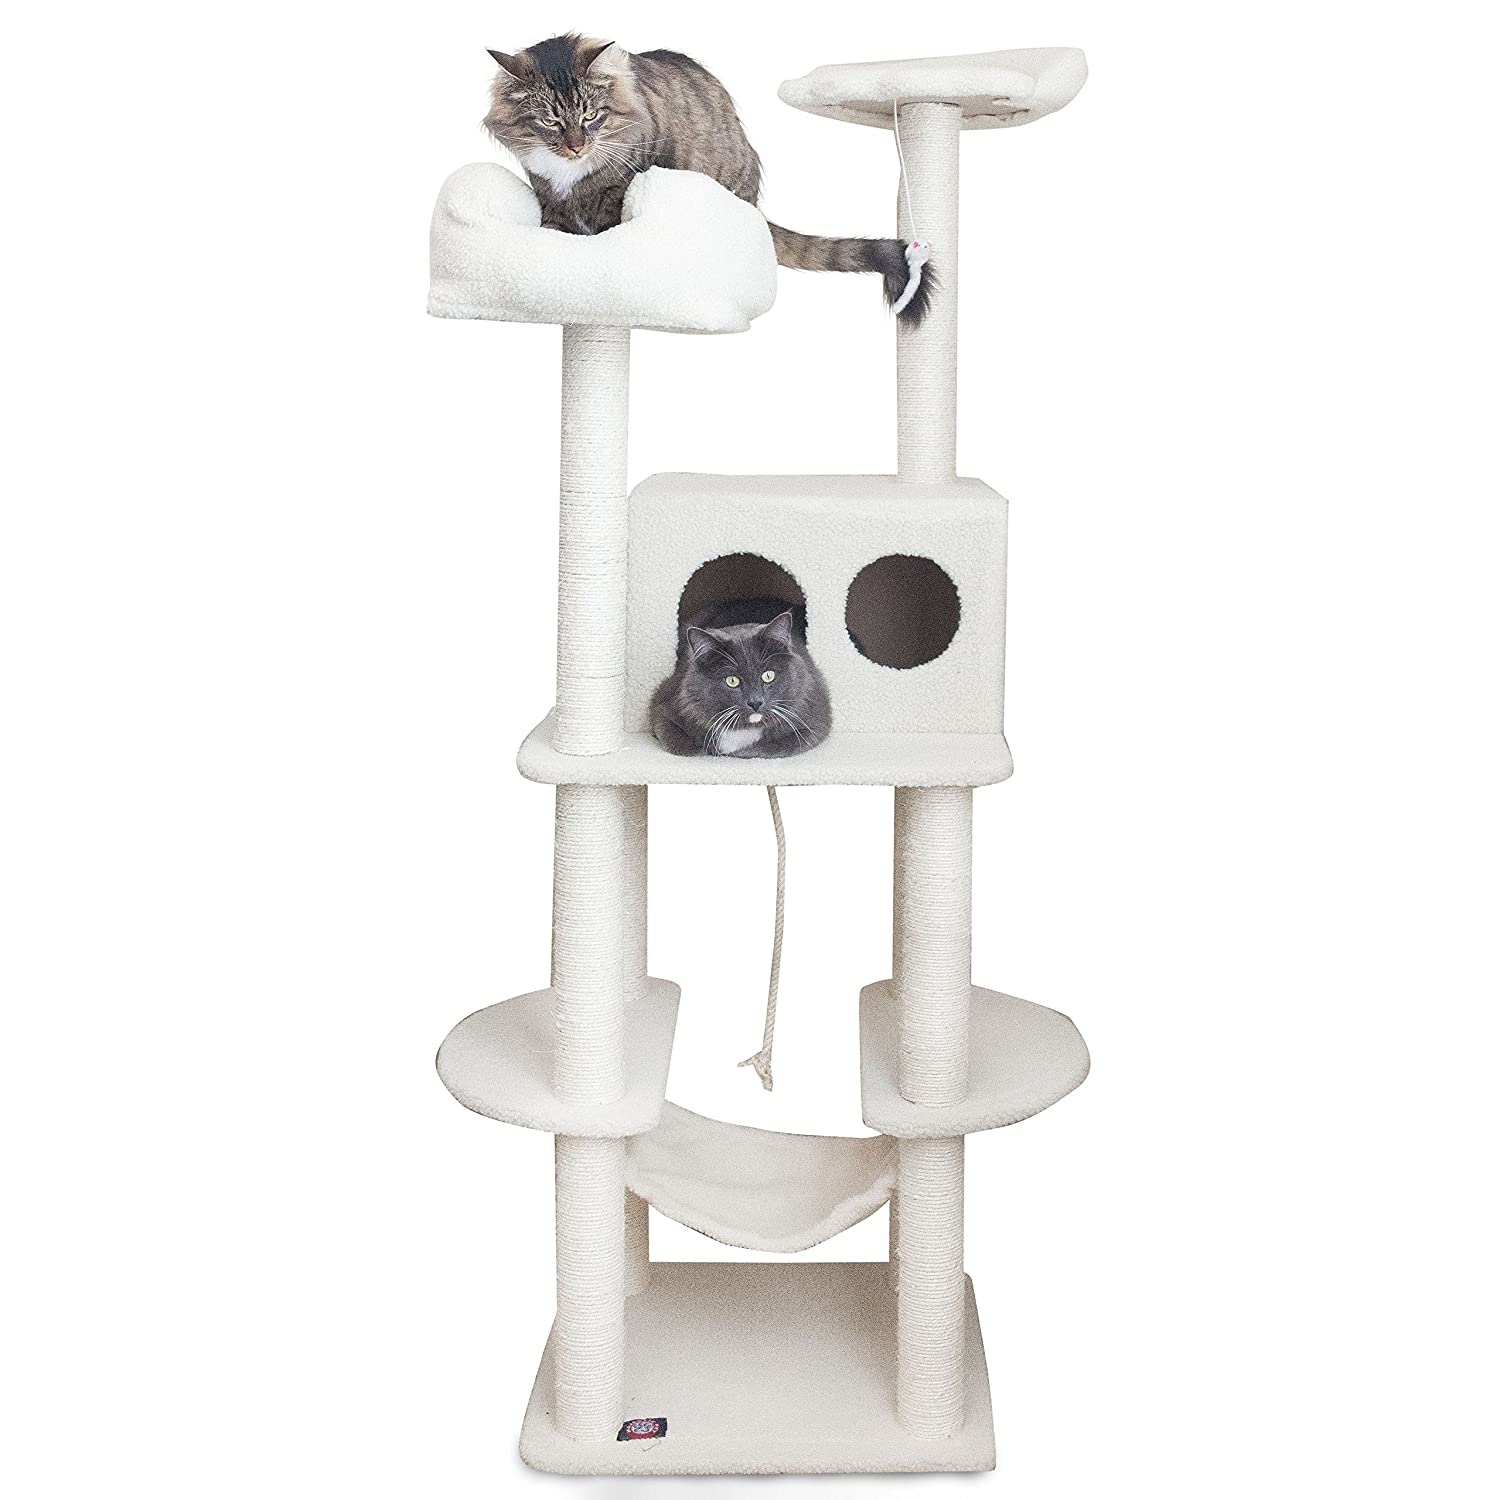 Cream Bungalow 76 Inch Cream Bungalow 76 Inch Majestic Pet 76-Inch Bungalow Sherpa Cat Tree